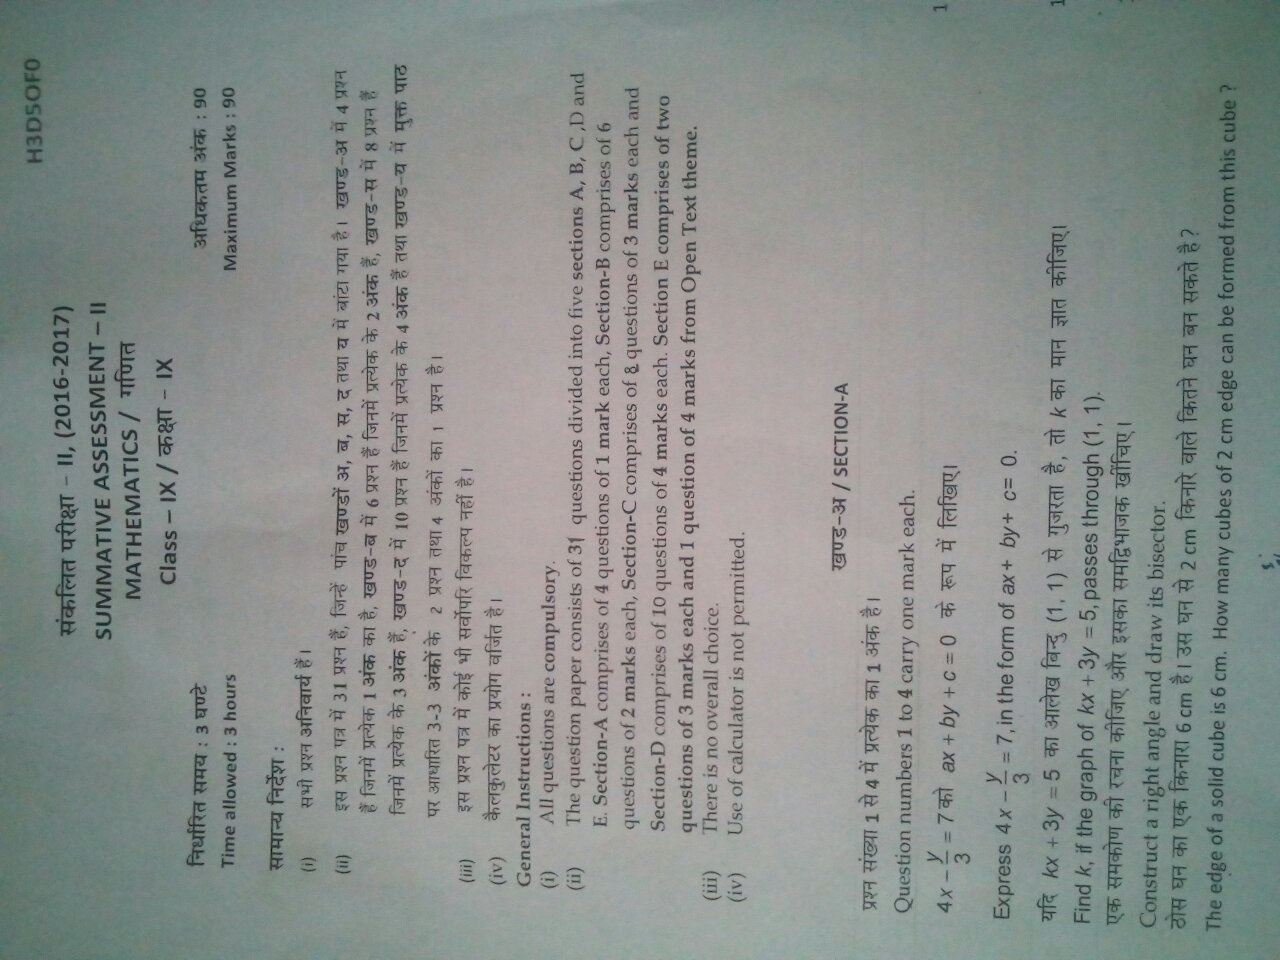 Provide me SA2 class 9 question paper of this year 2017 in